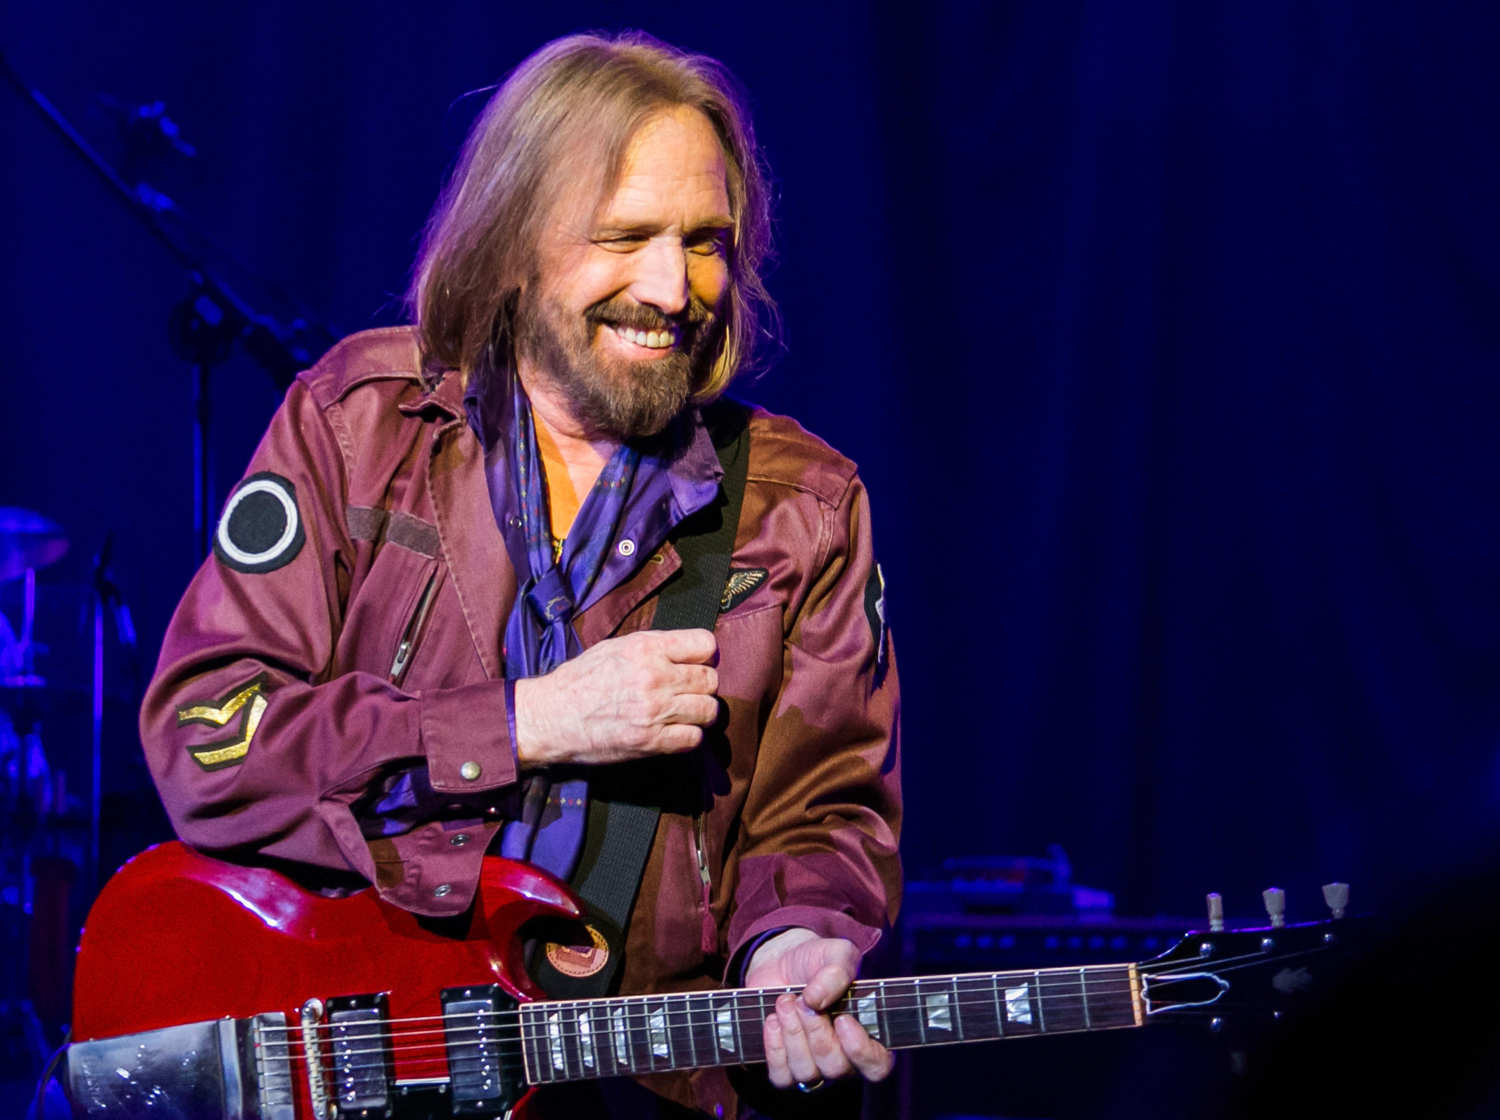 Tom Petty, who died on October 2, 2017, pictured at one of his concerts.